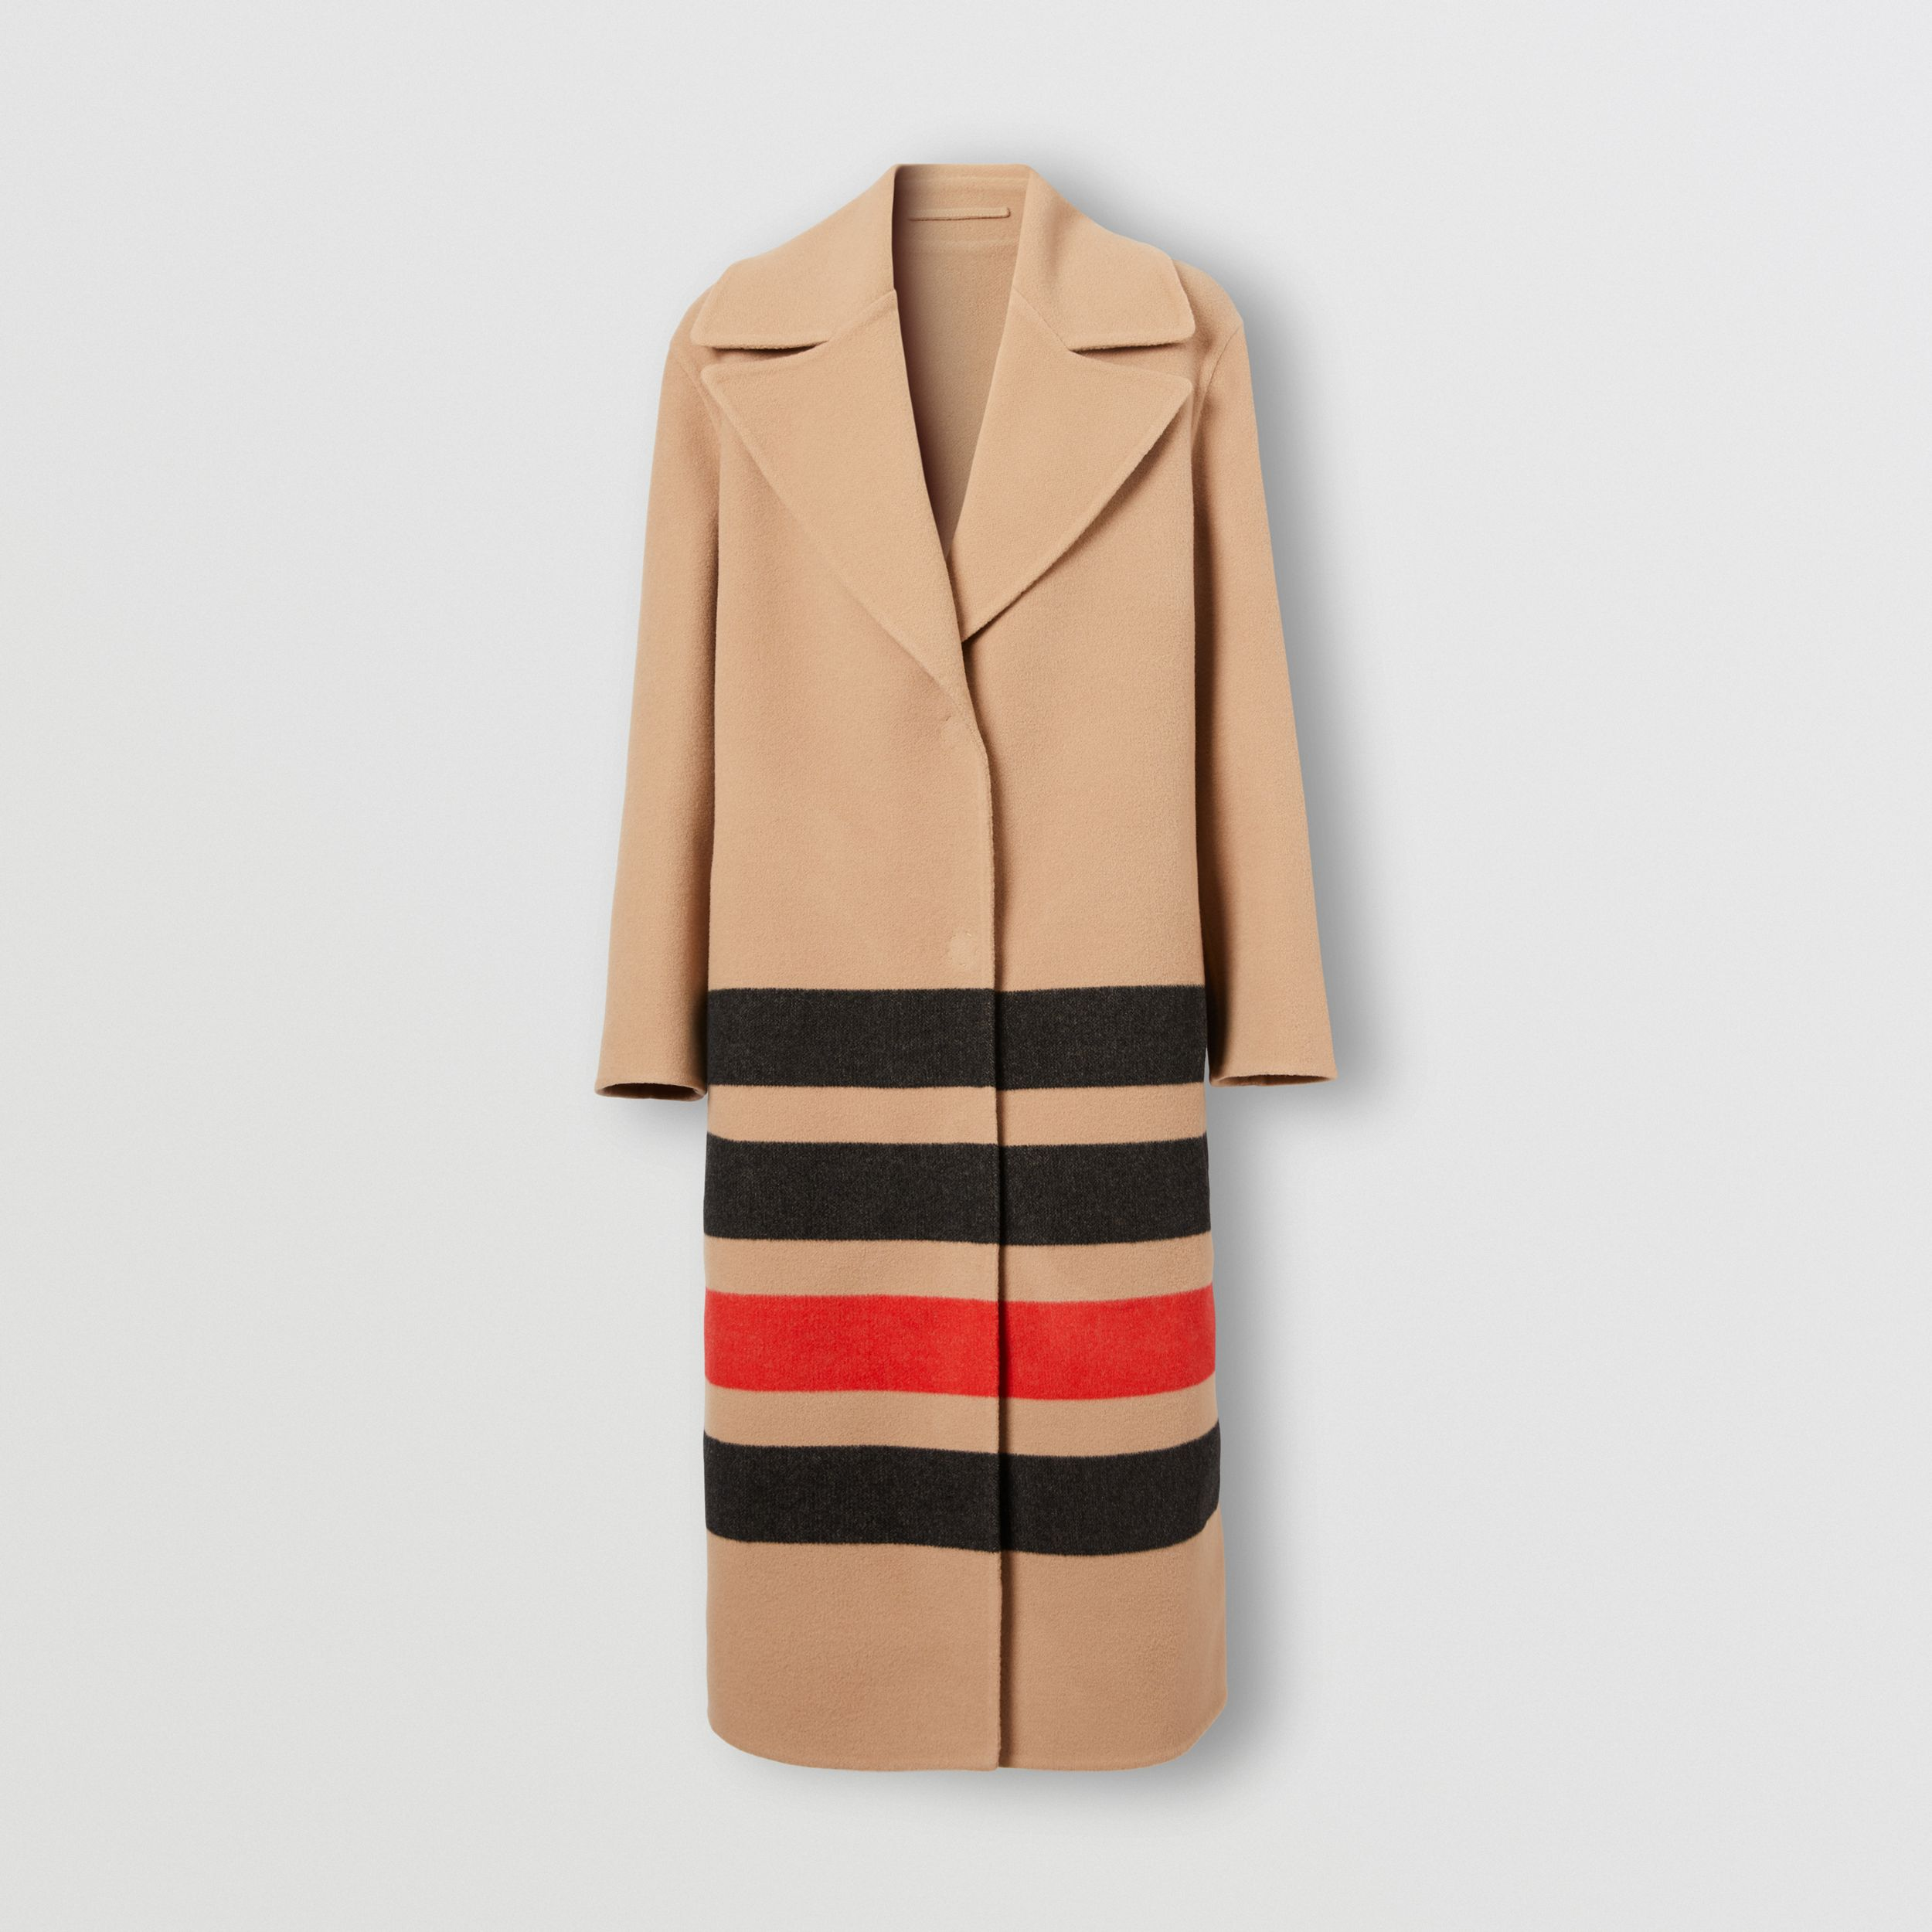 Stripe Detail Double-faced Wool Coat in Light Camel - Women | Burberry - 4